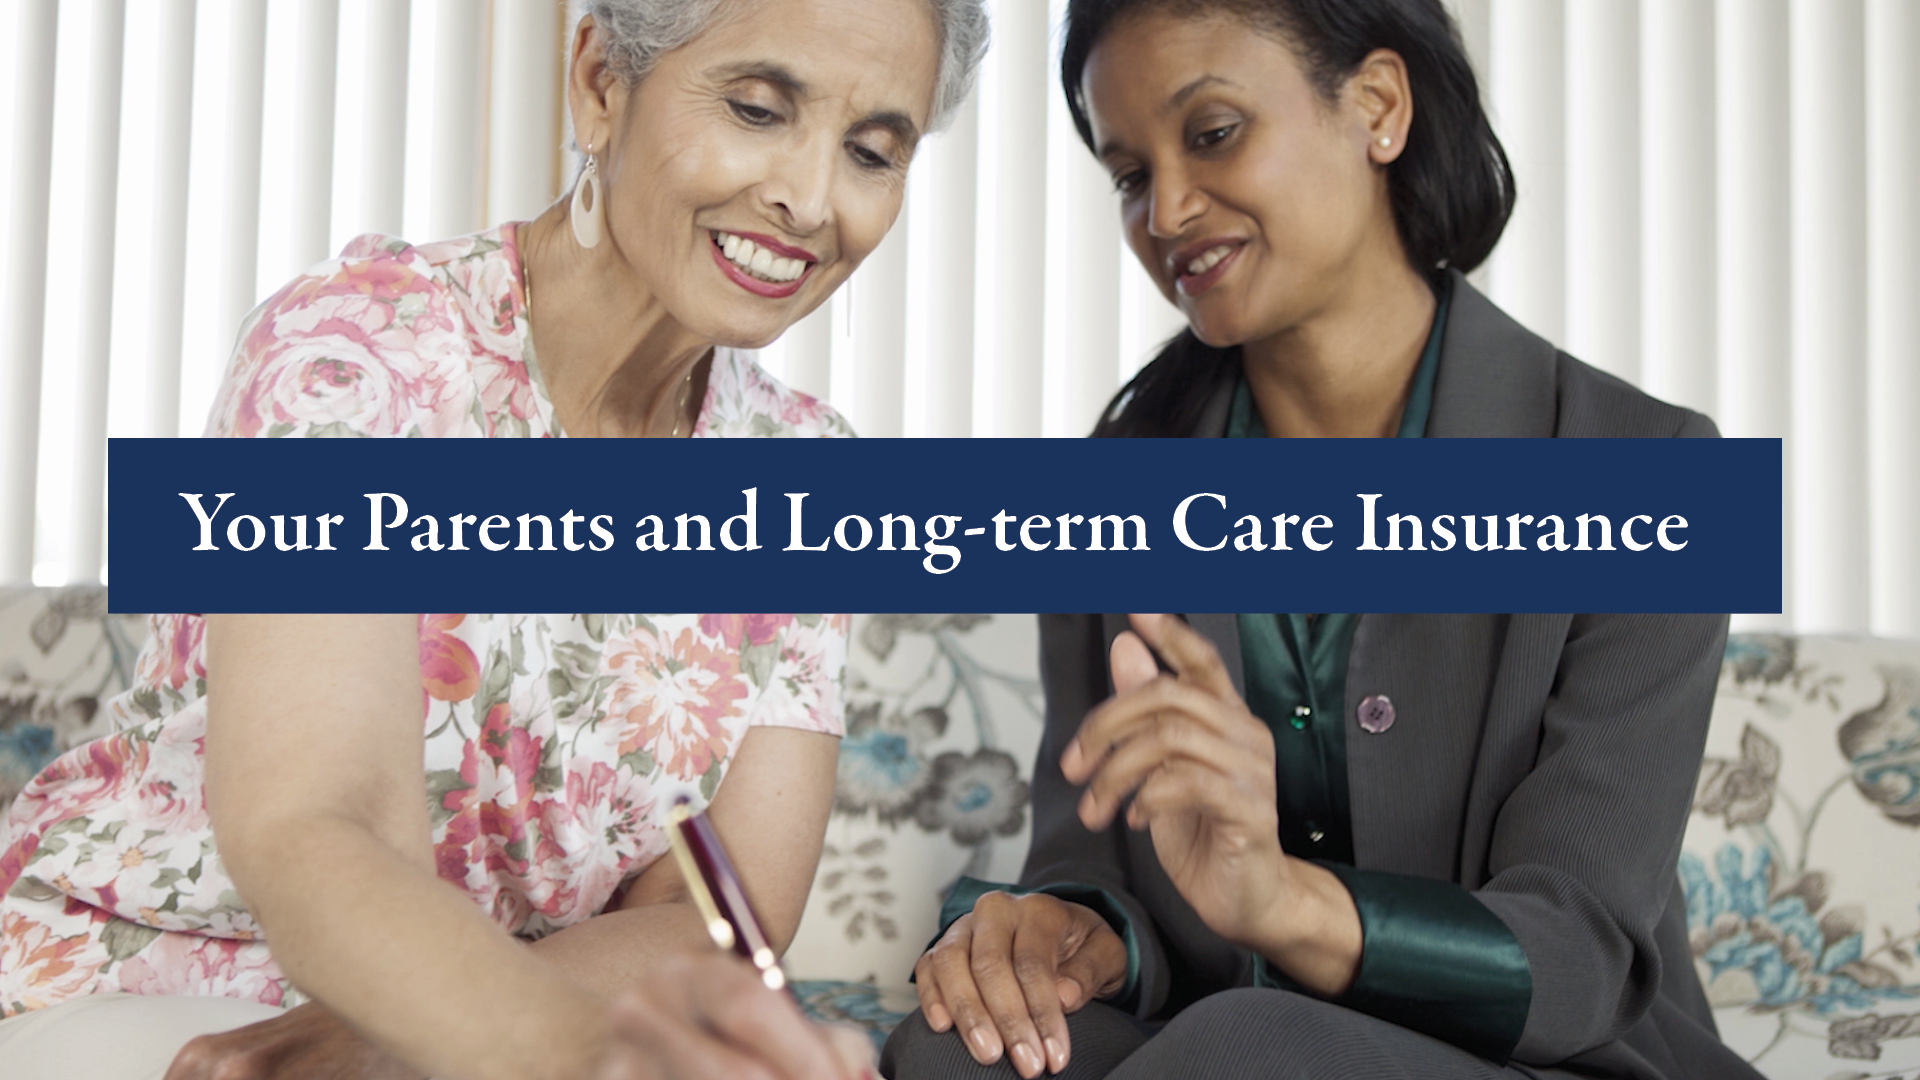 Your parents and long-term care insurance